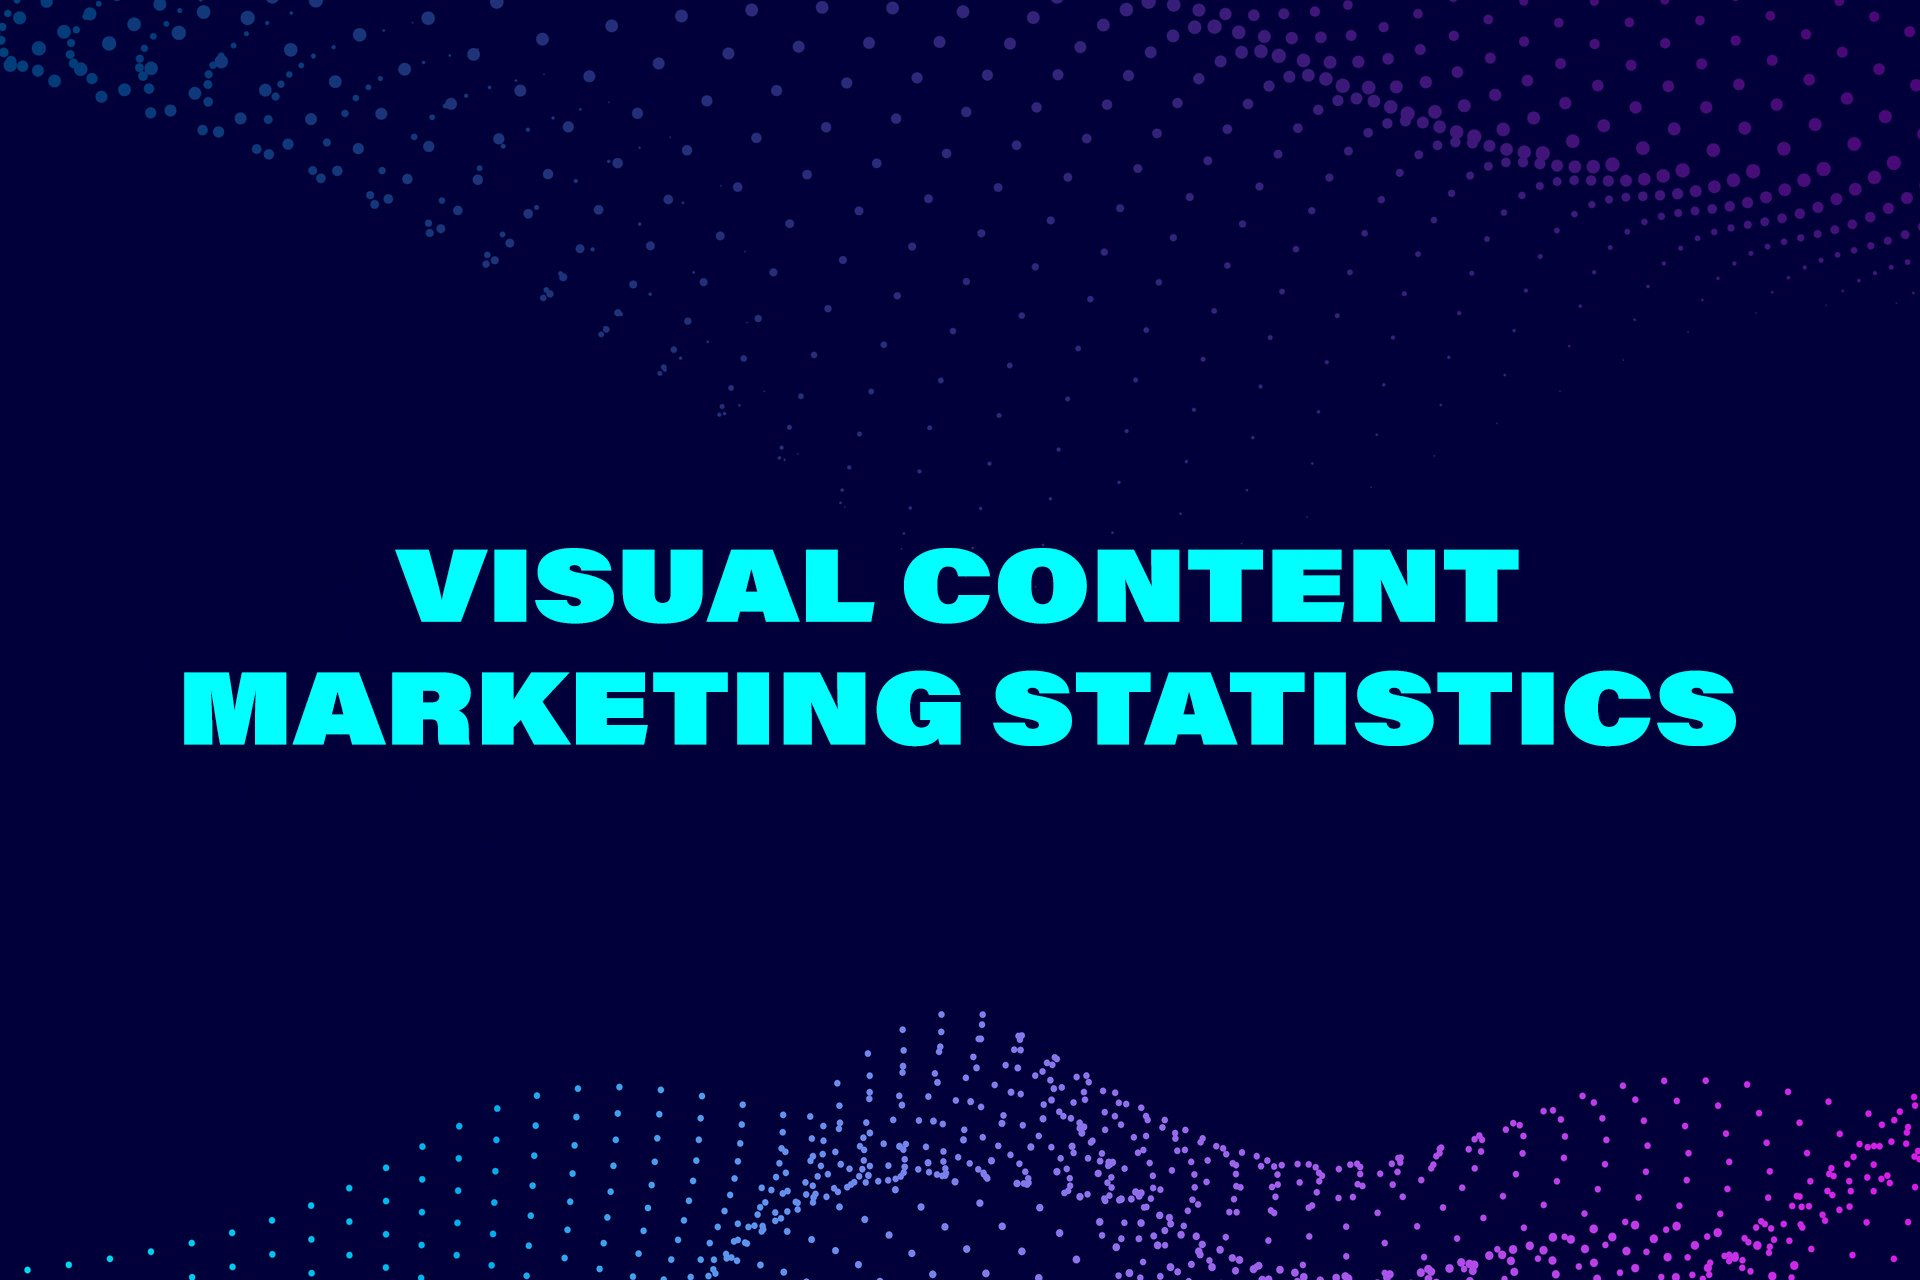 50 Mind-Blowing Visual Content Marketing Statistics